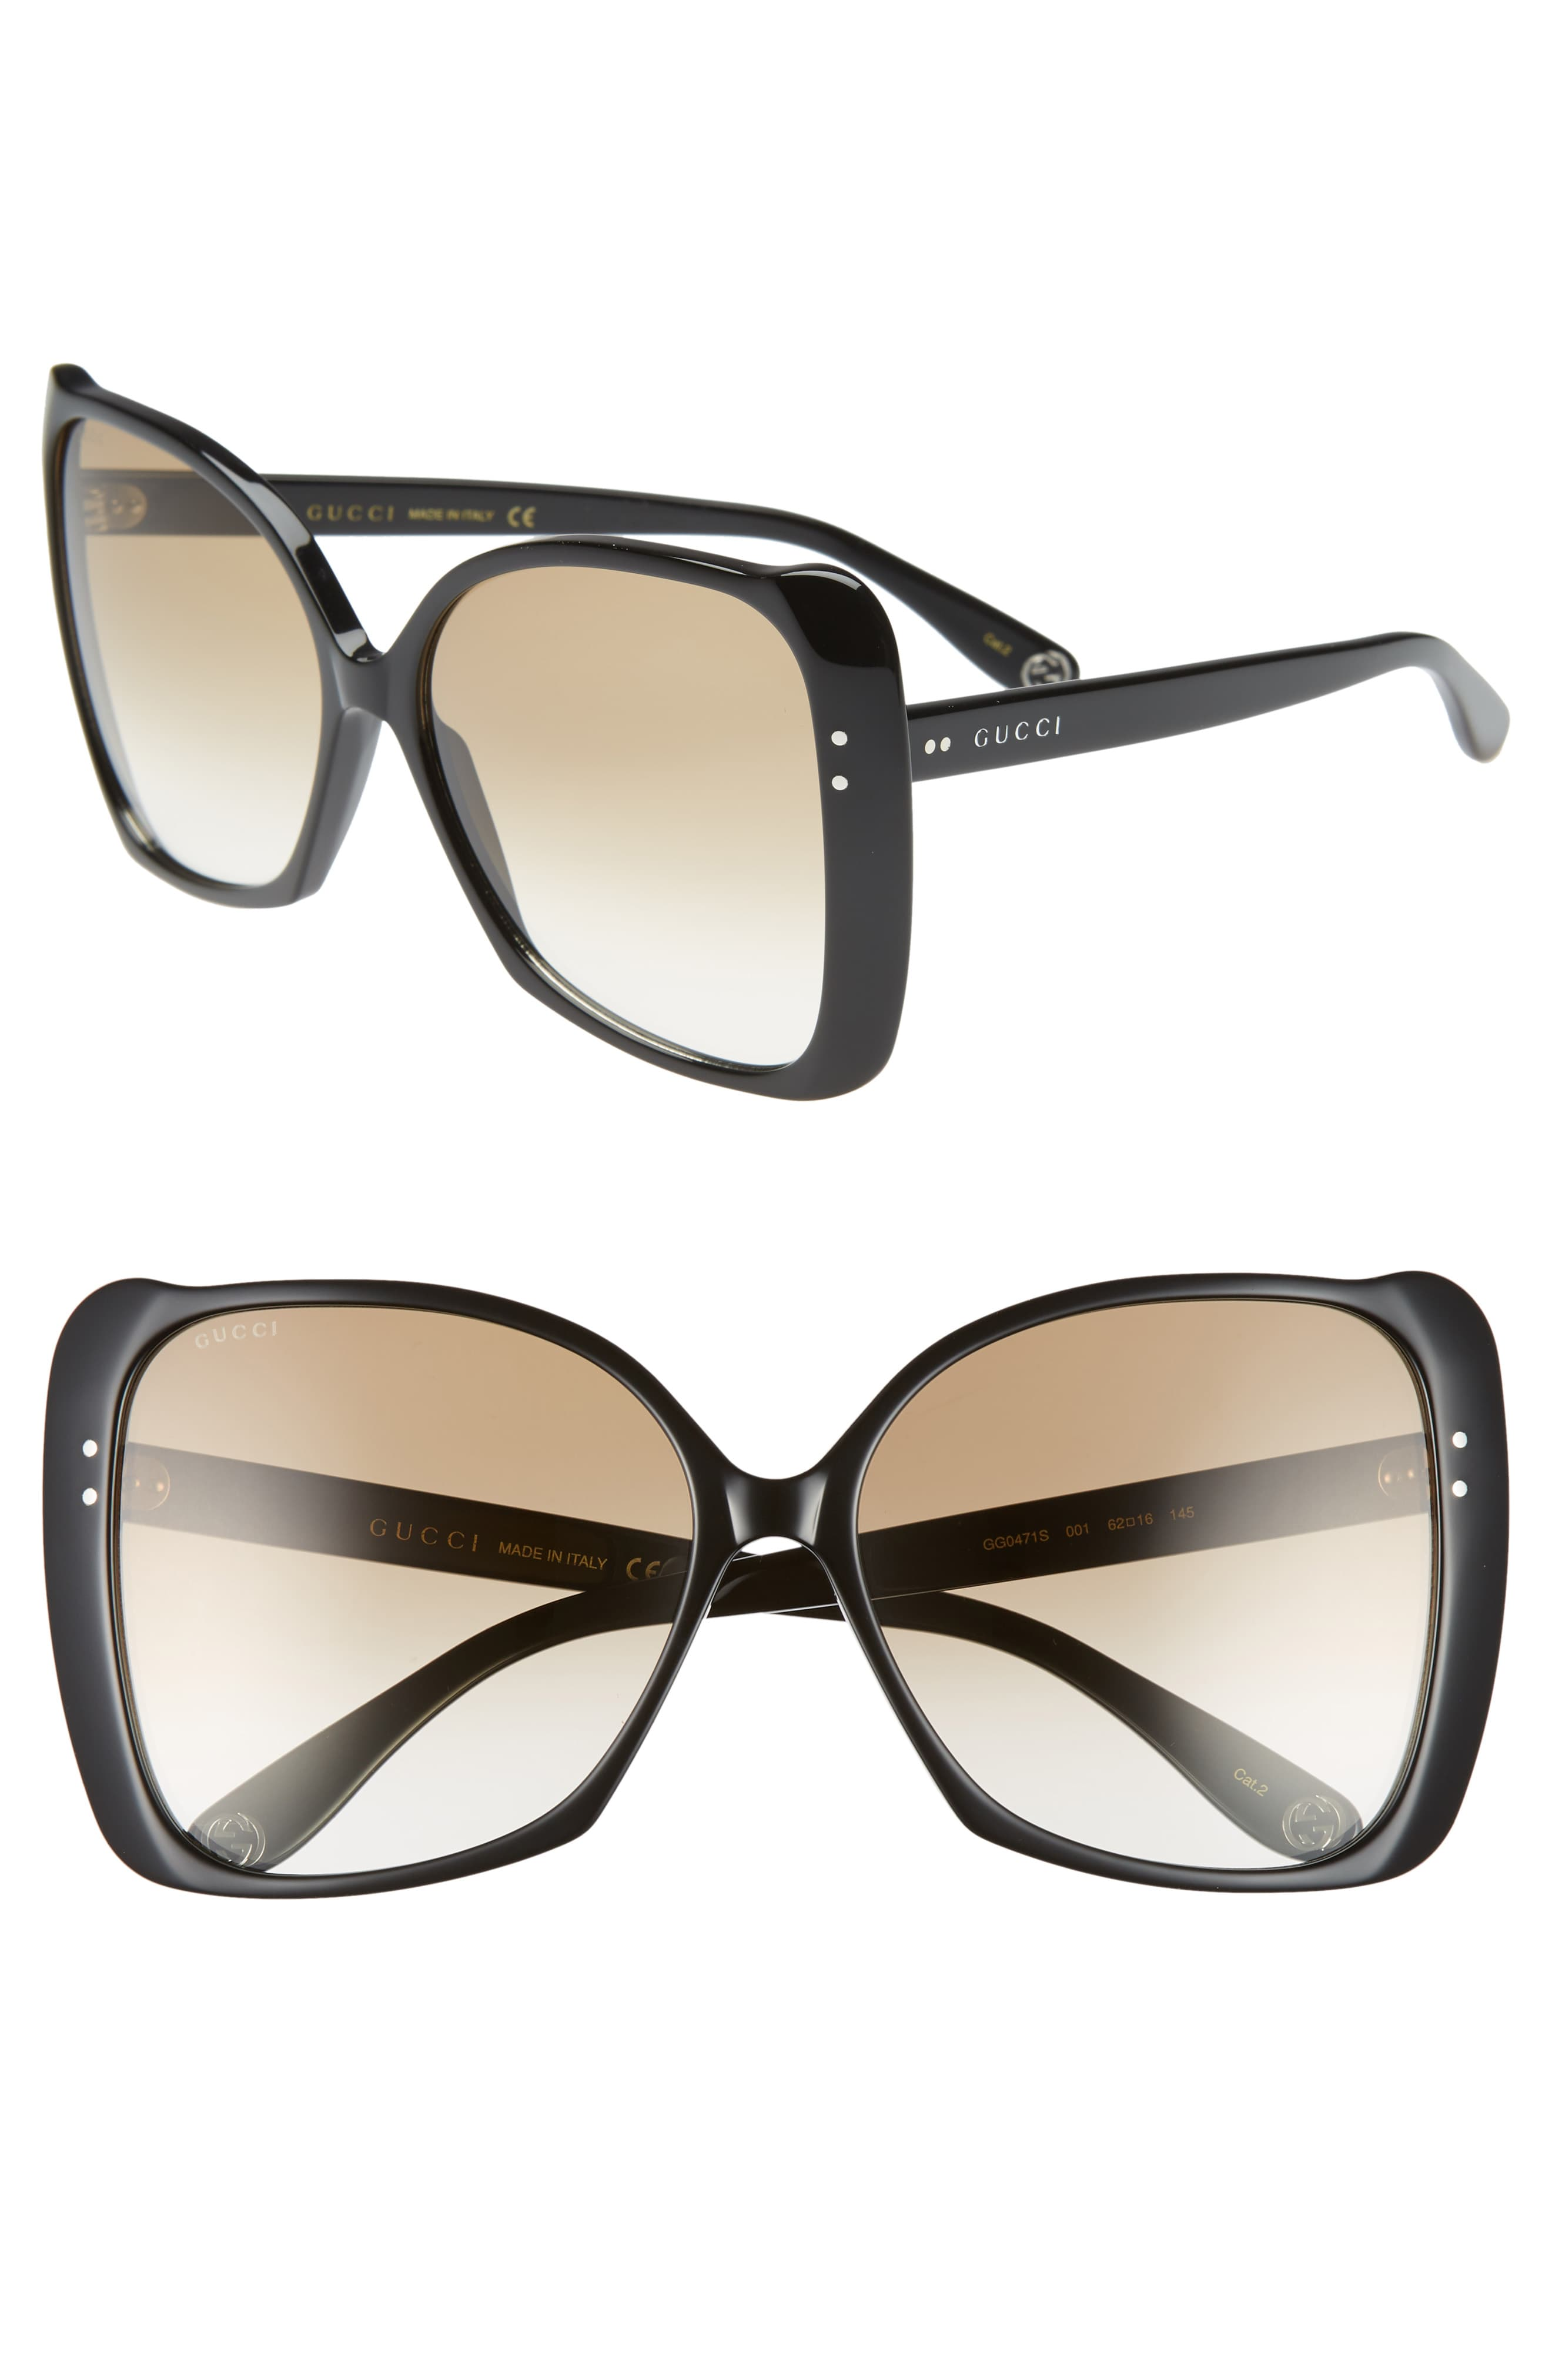 0591841cb338 Women's Gucci 62Mm Oversize Butterfly Sunglasses - Shiny Black/ Brown  Gradient